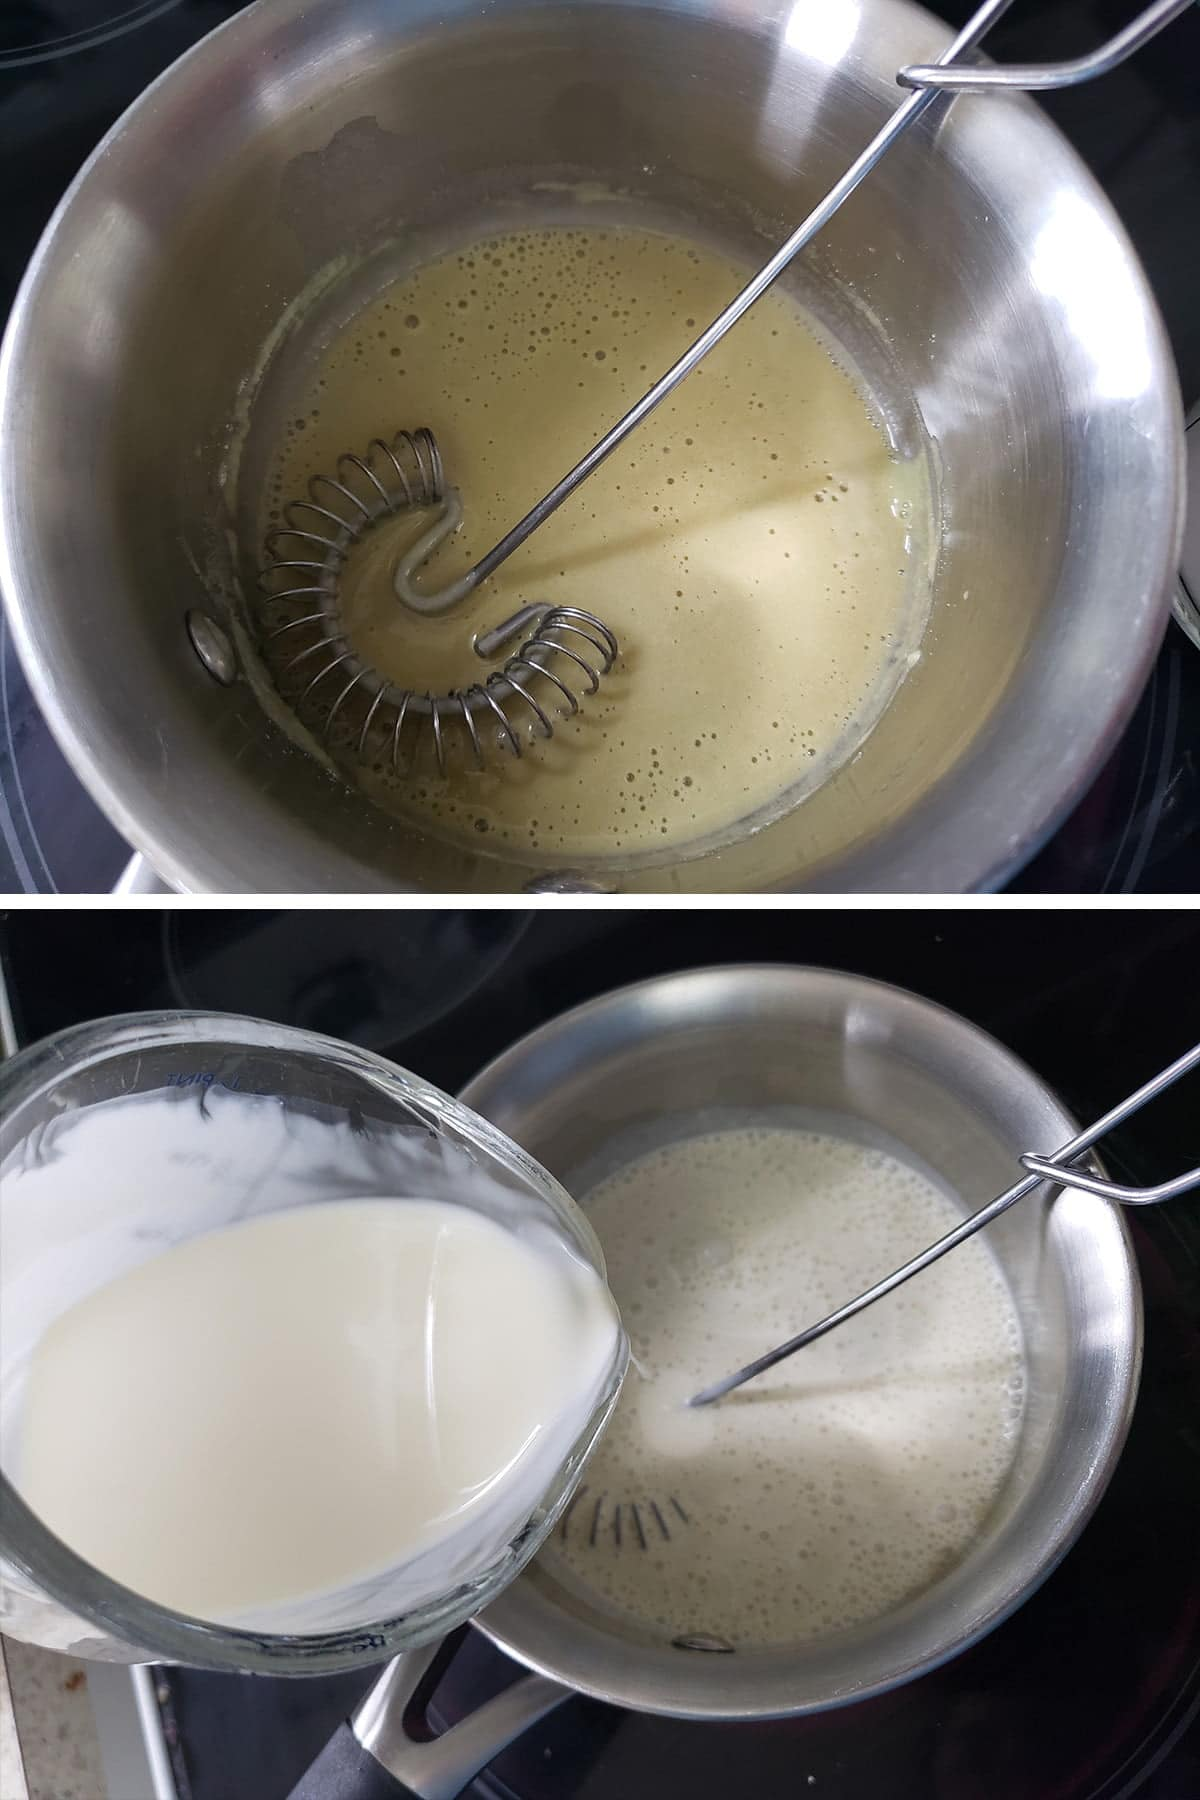 A two part compilation image showing the wasabit, vinegar, and soy sauce mixed together in the top image, and the heavy cream being added to the pot in the second image.